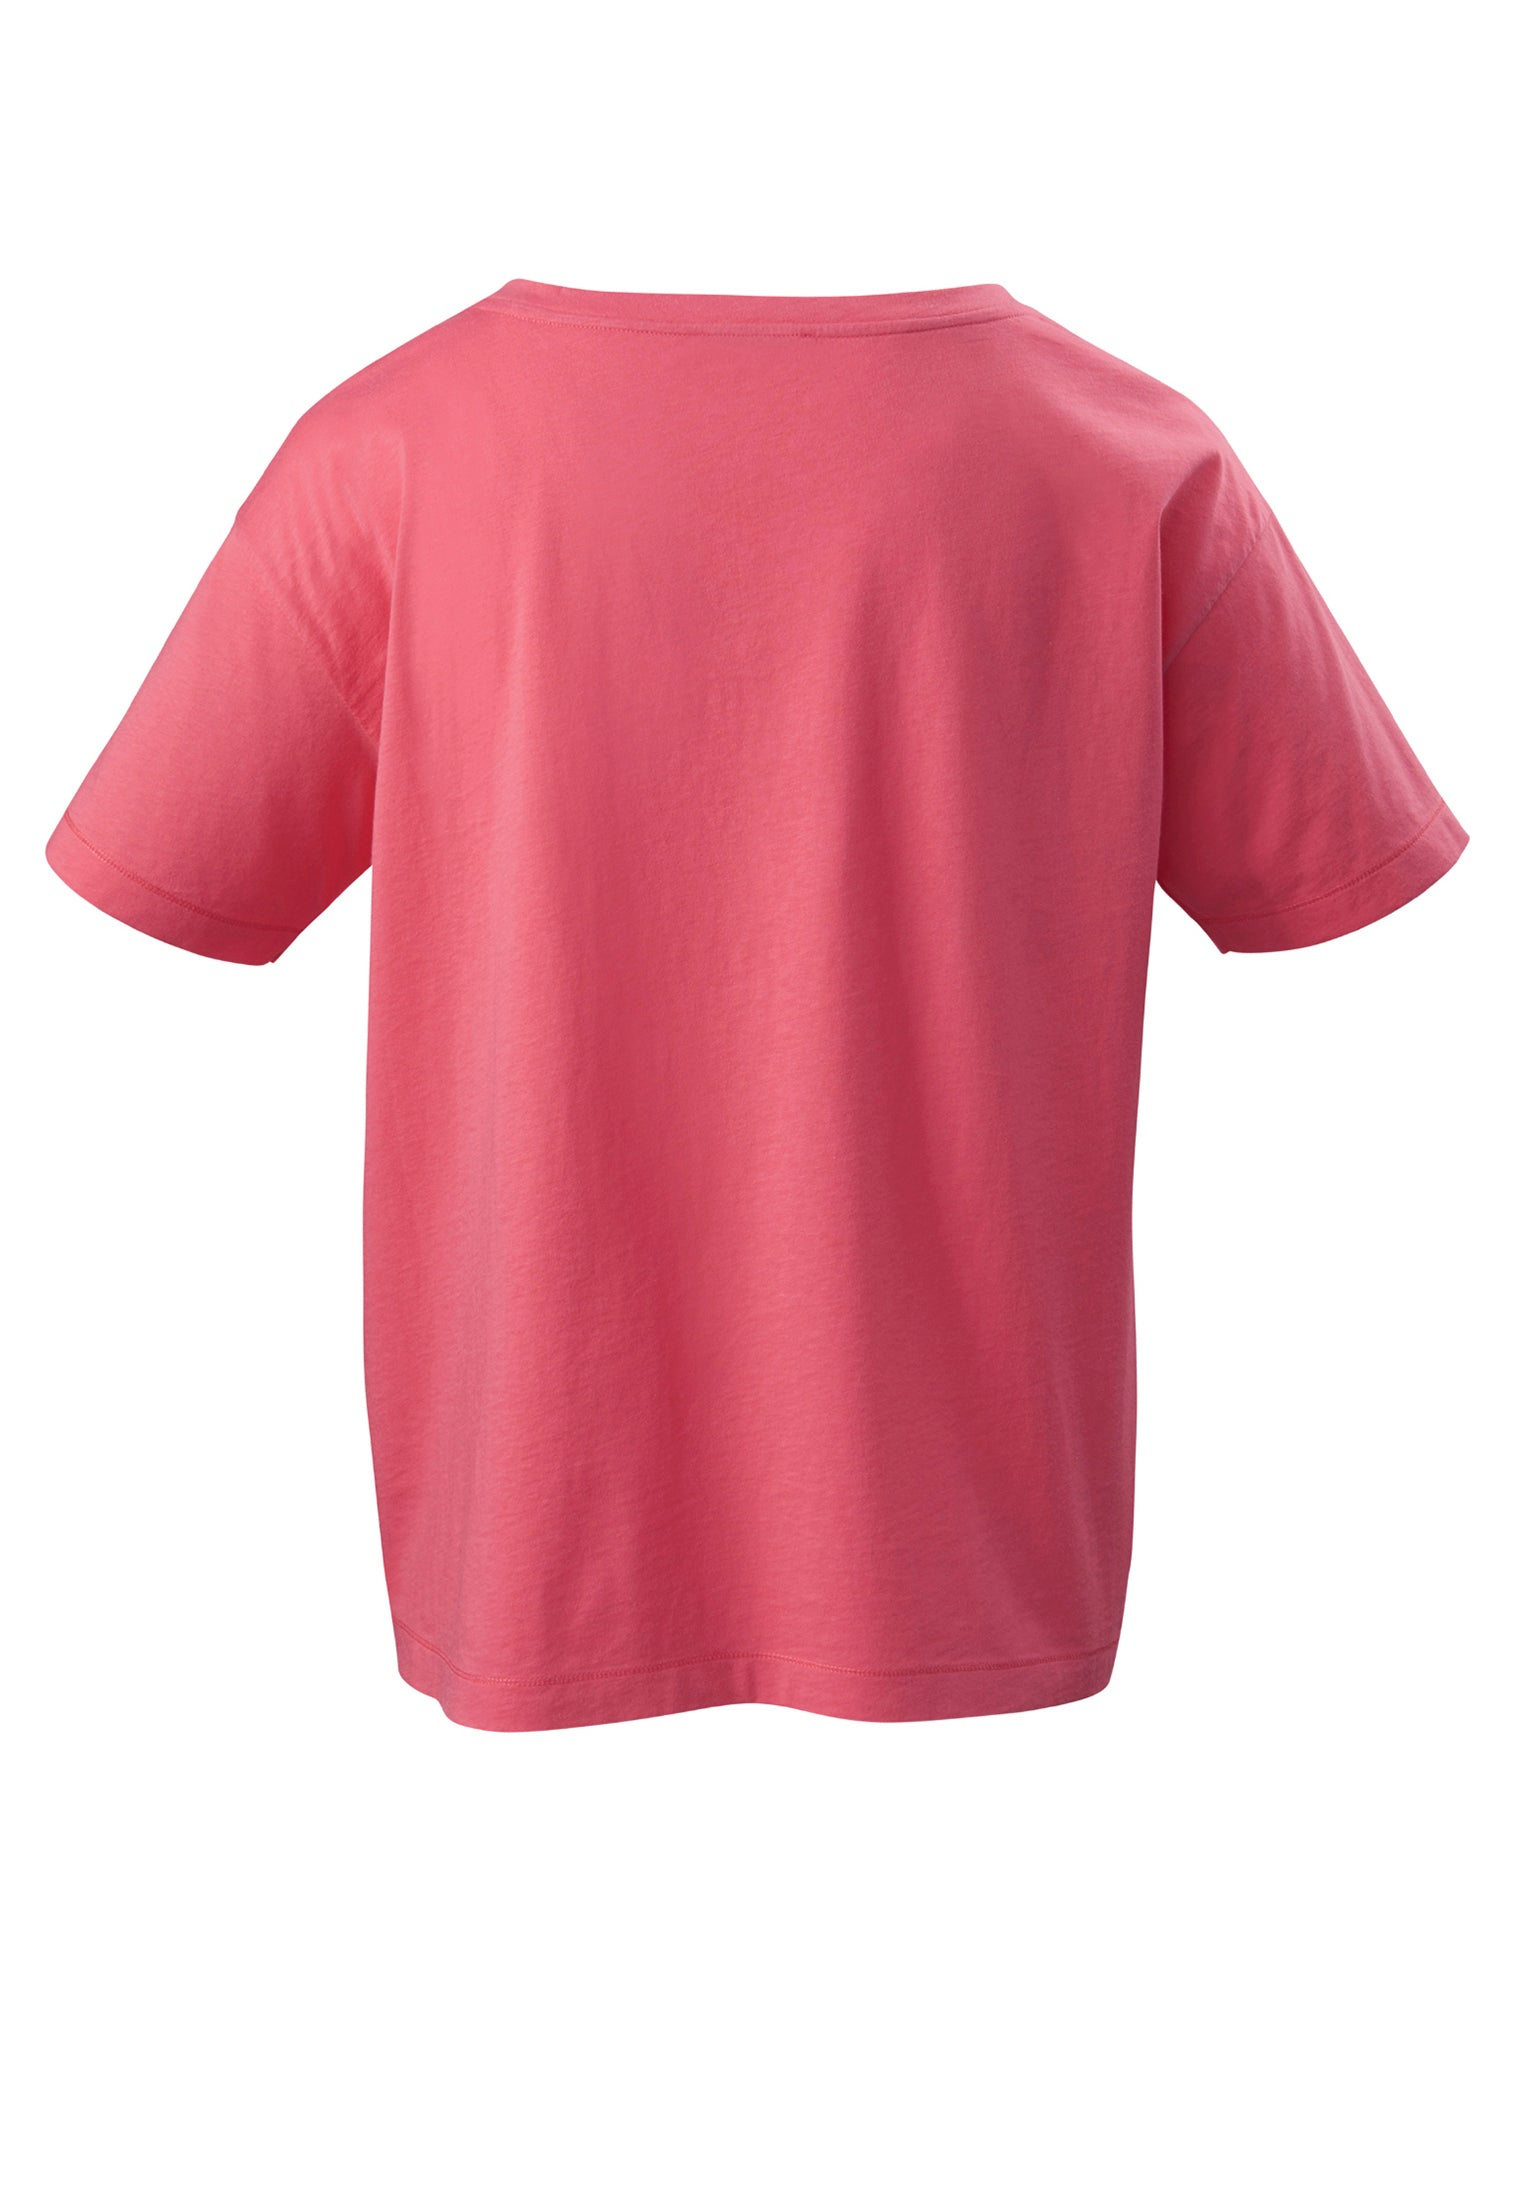 The Boxy T-Shirt Coral